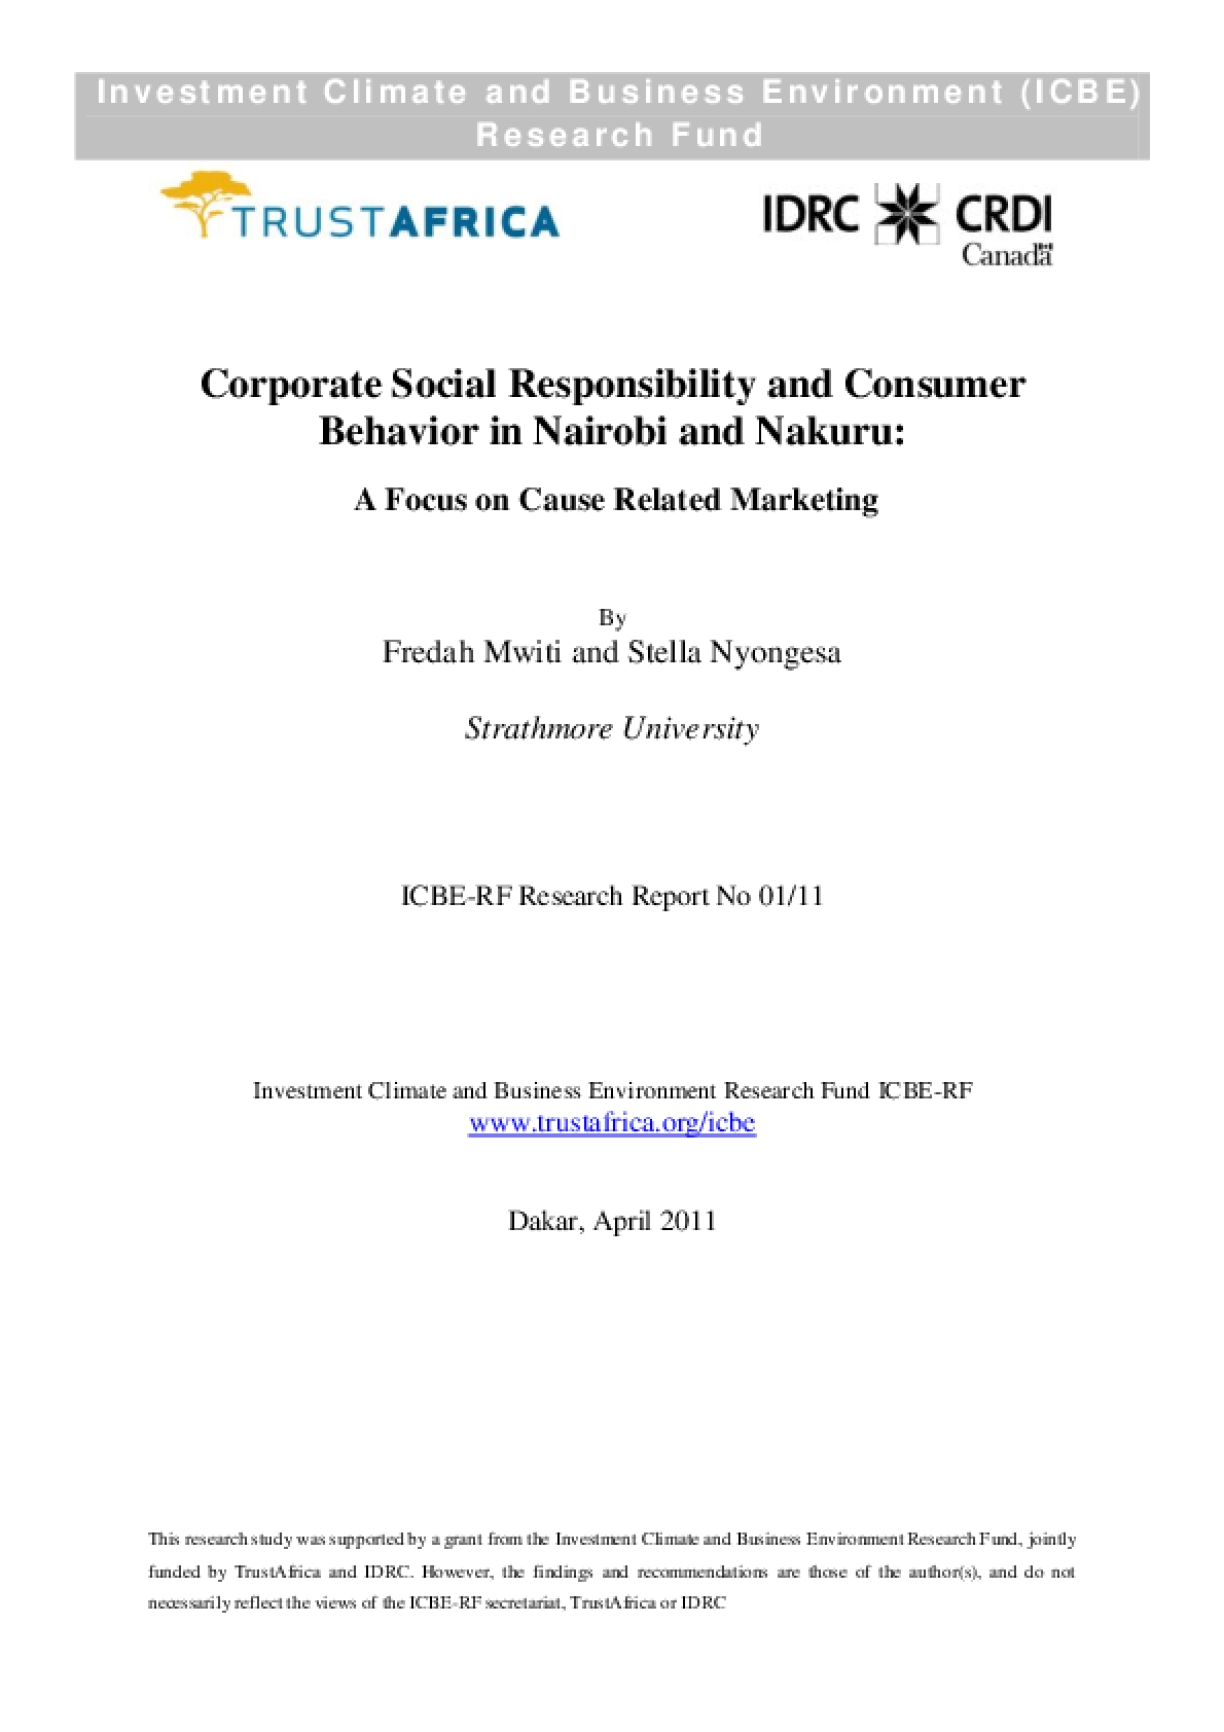 Corporate Social Responsibility and Consumer Behaviour in Nairobi and Nakuru: A Focus on Cause Related Marketing